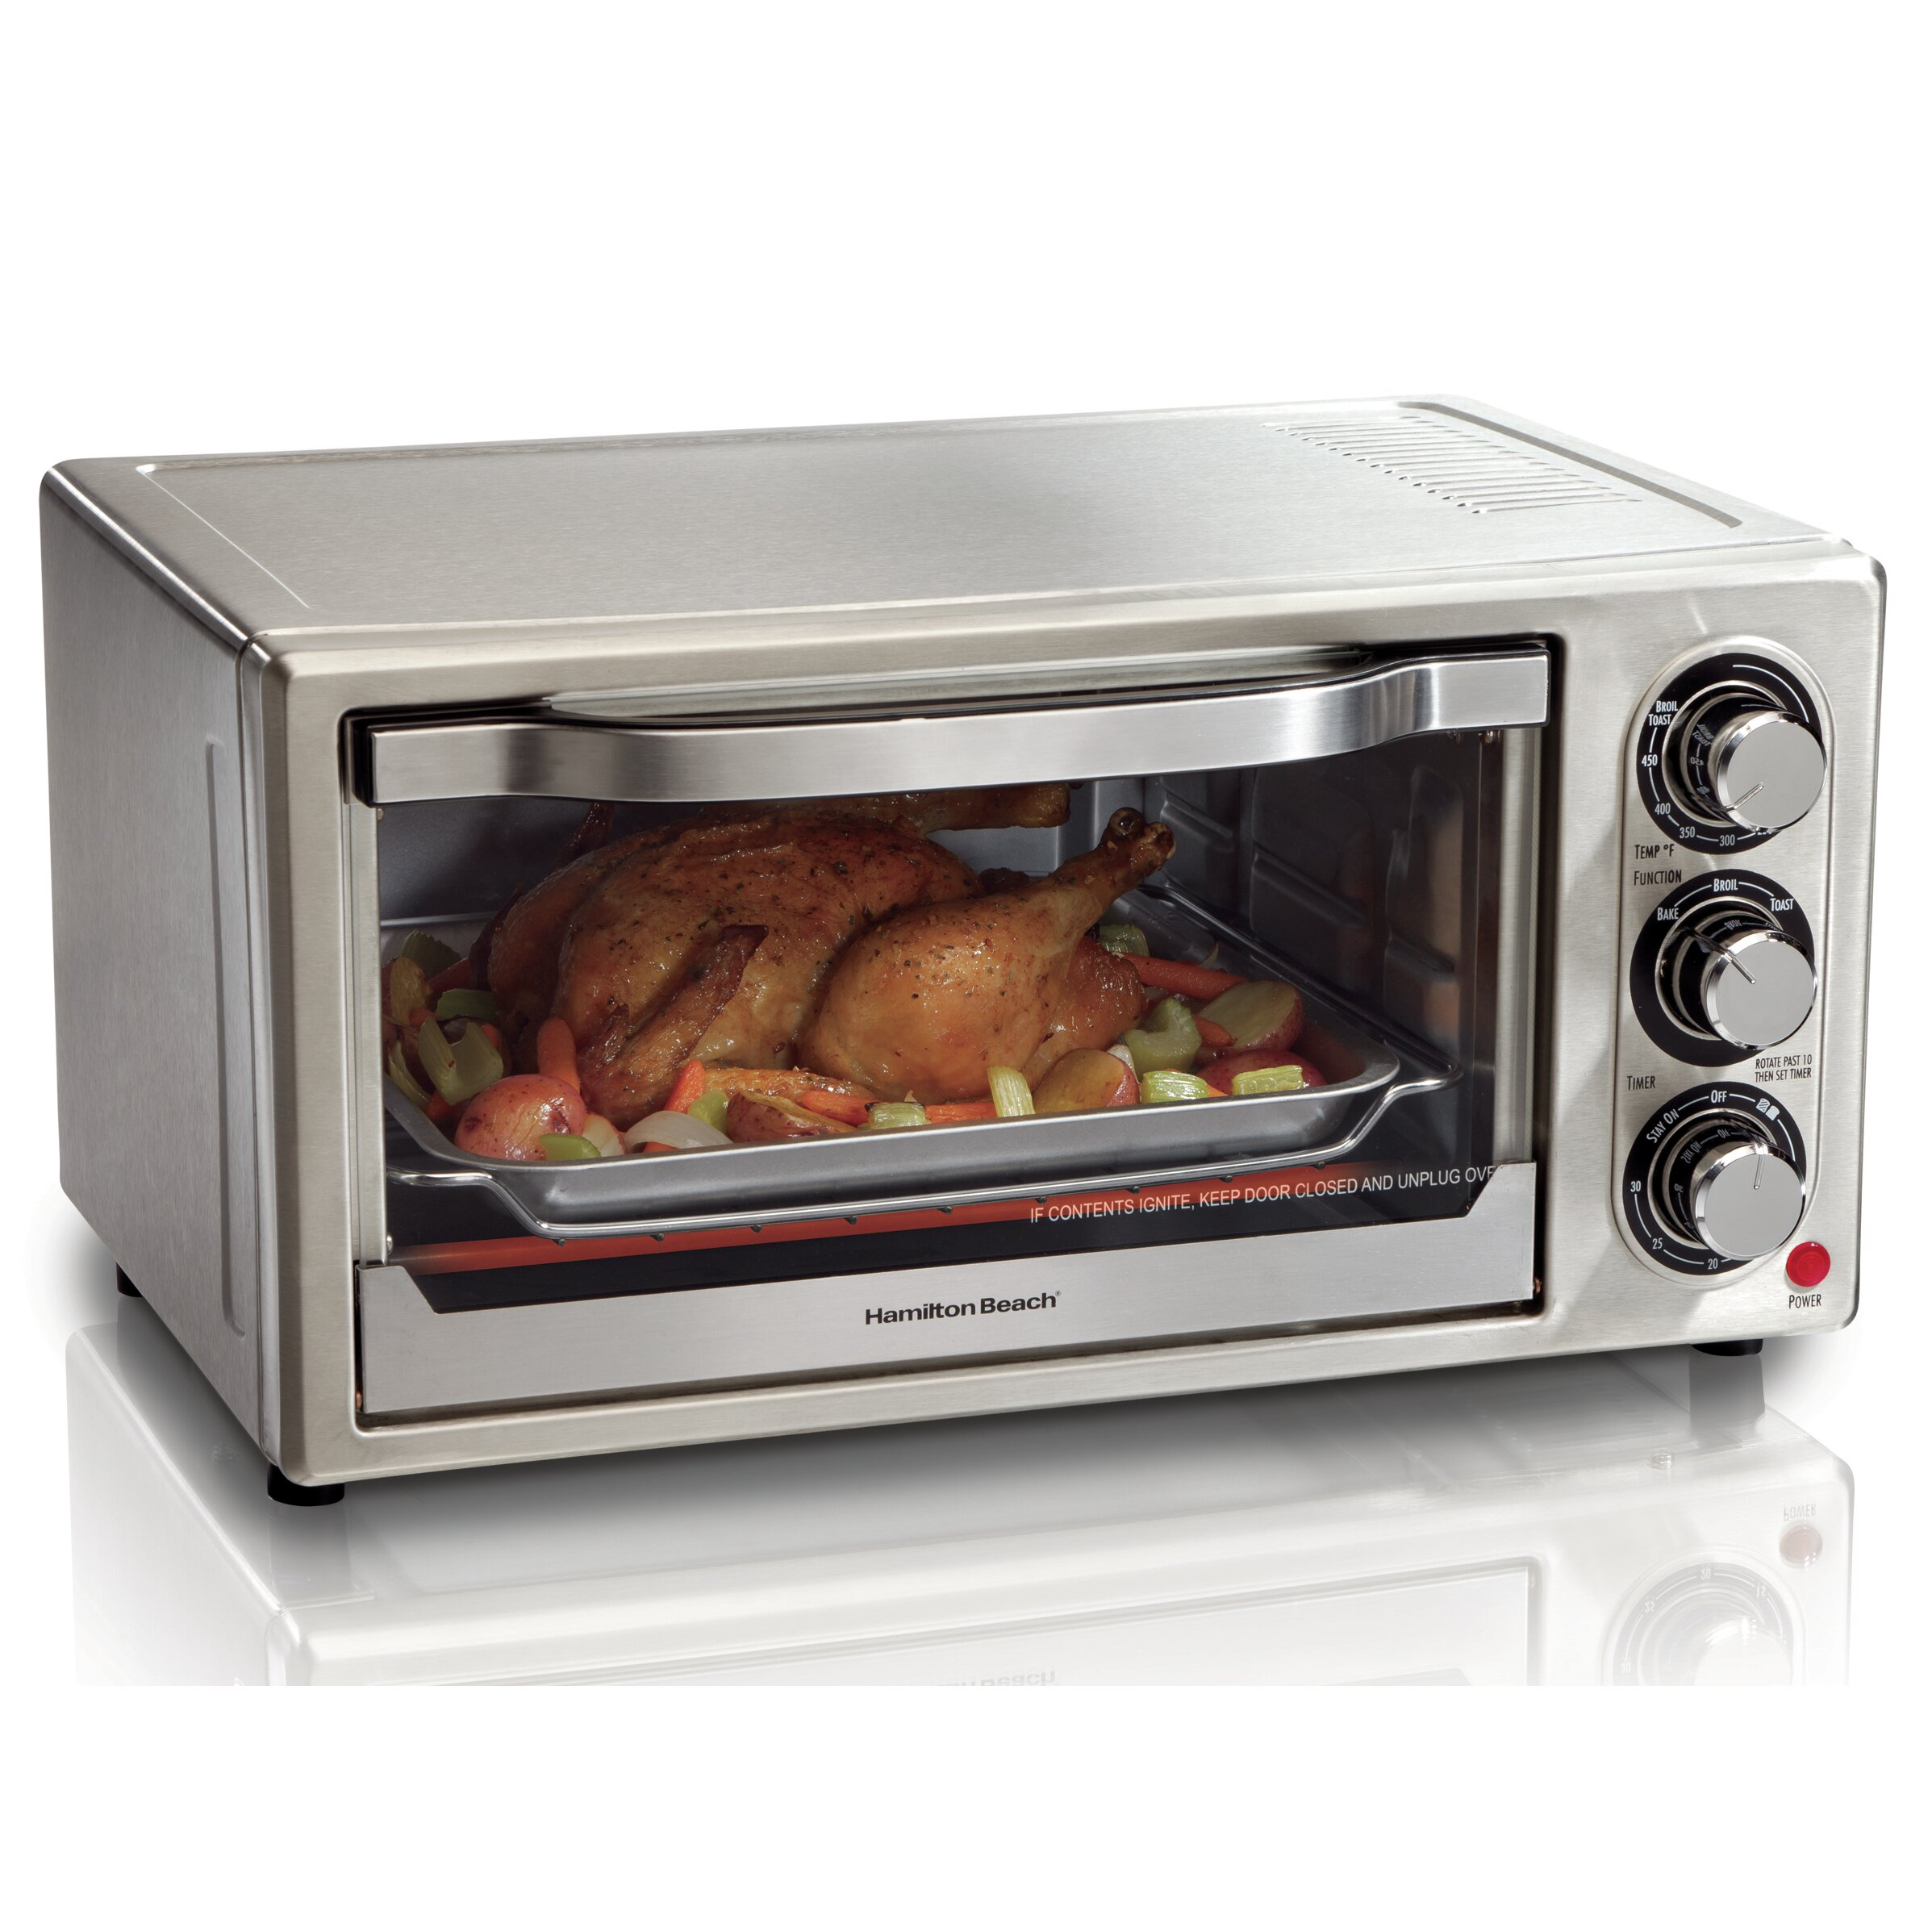 Hamilton Beach Toaster Oven Reviews Wayfair